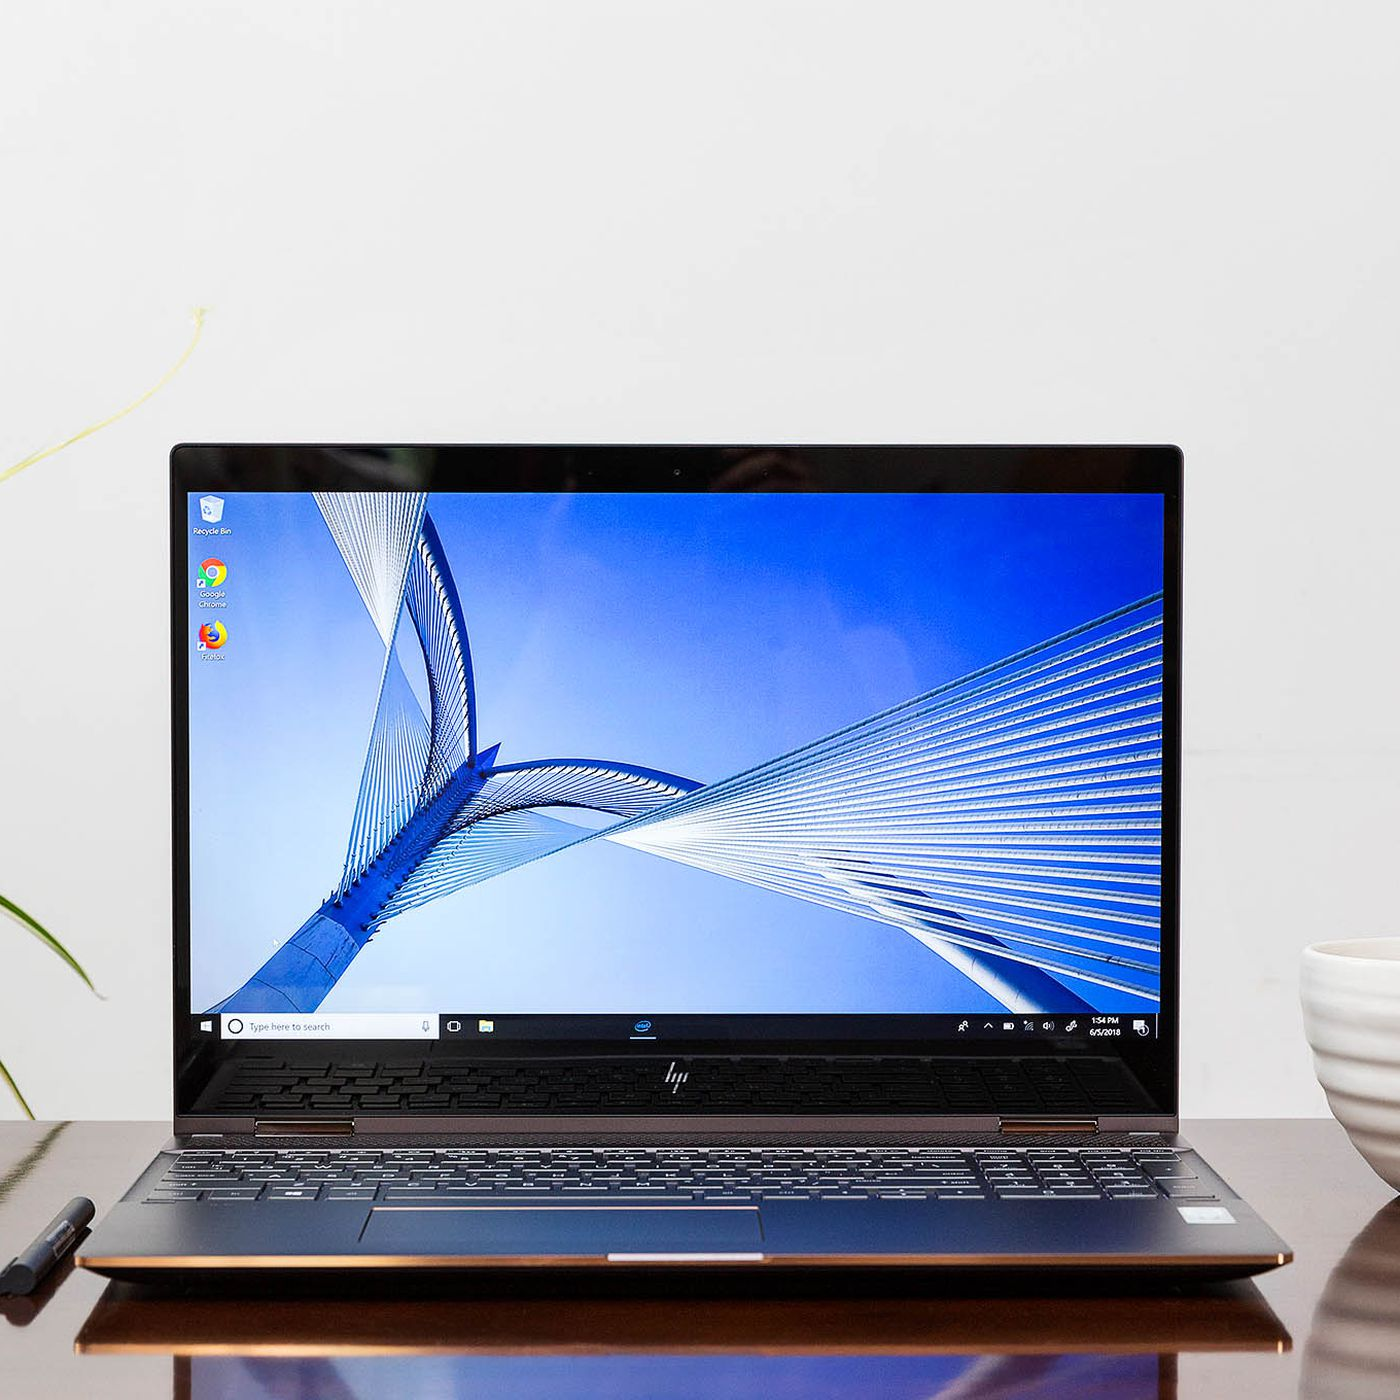 HP Spectre x360 15 review: performance, portability, and